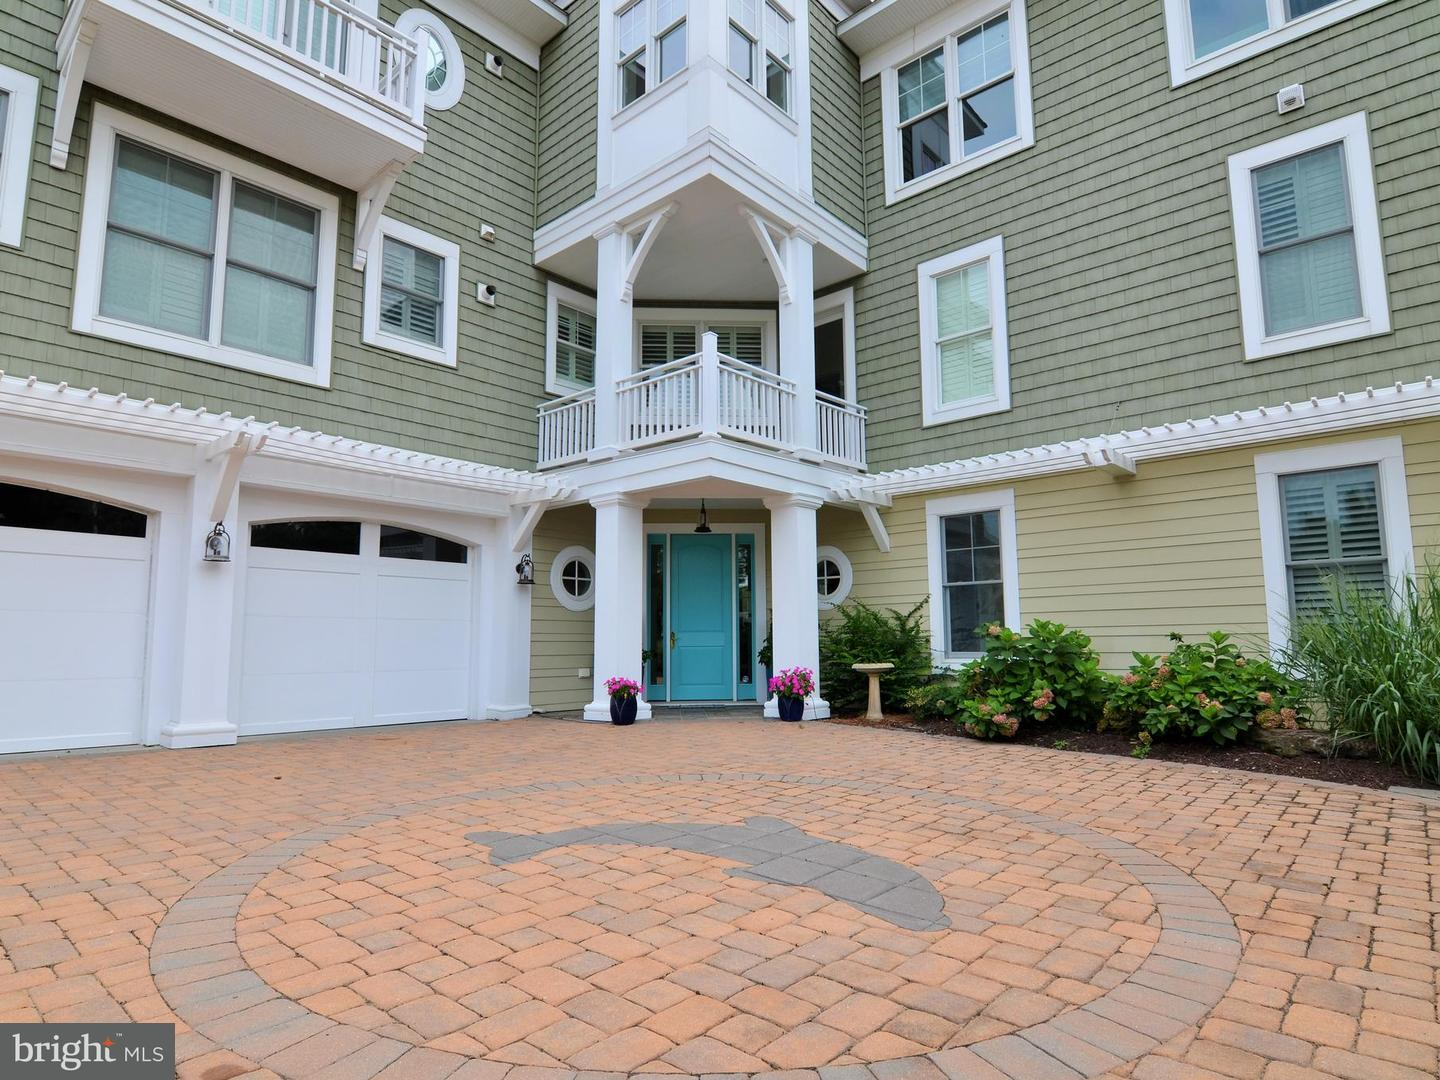 1002293530-300500805869-2018-09-25-15-08-24 31 Hall Ave | Rehoboth Beach, De Real Estate For Sale | MLS# 1002293530  - Suzanne Macnab